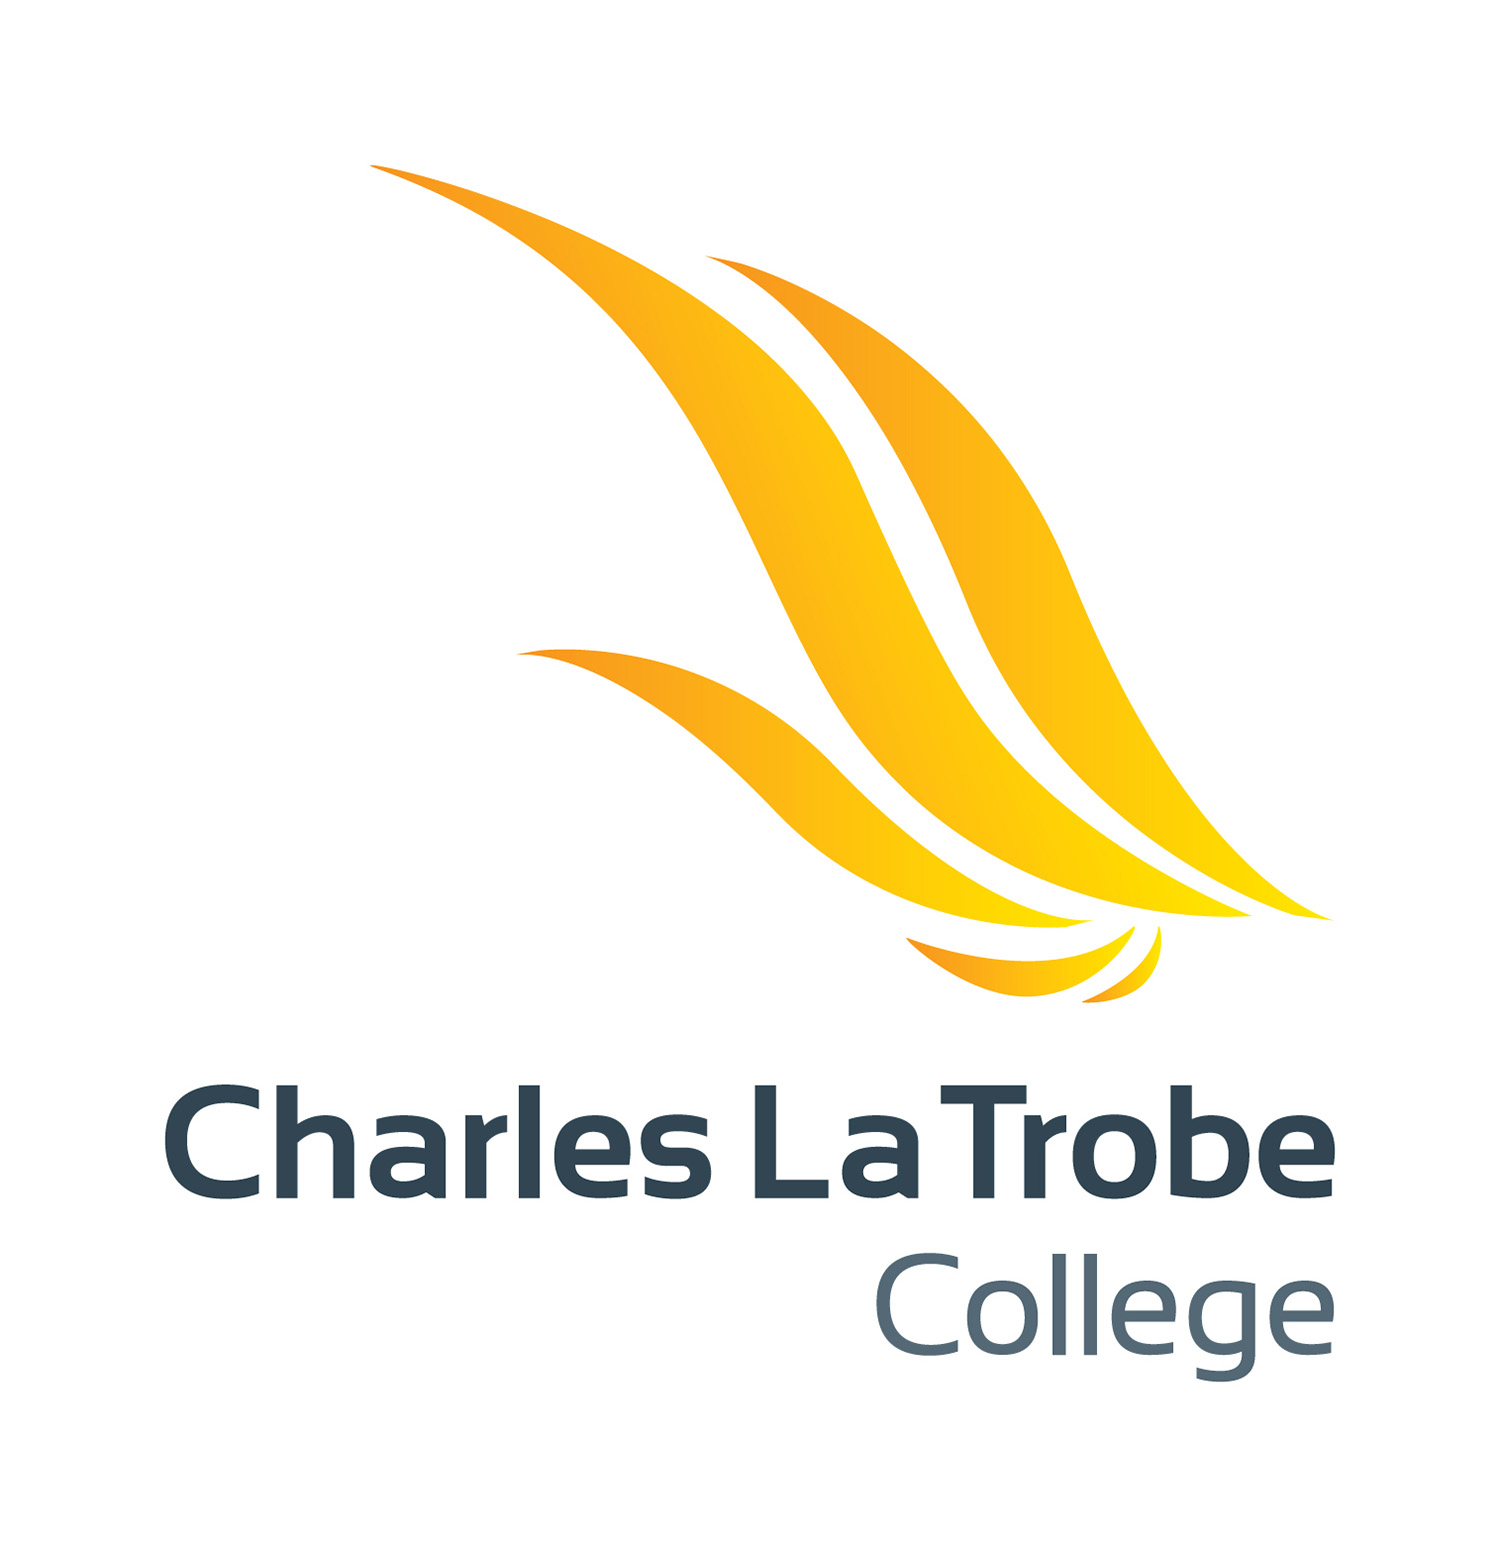 CharlesLaTrobeCollege_ID_D5_CONCEPT_ONLY_RGB reporter pro